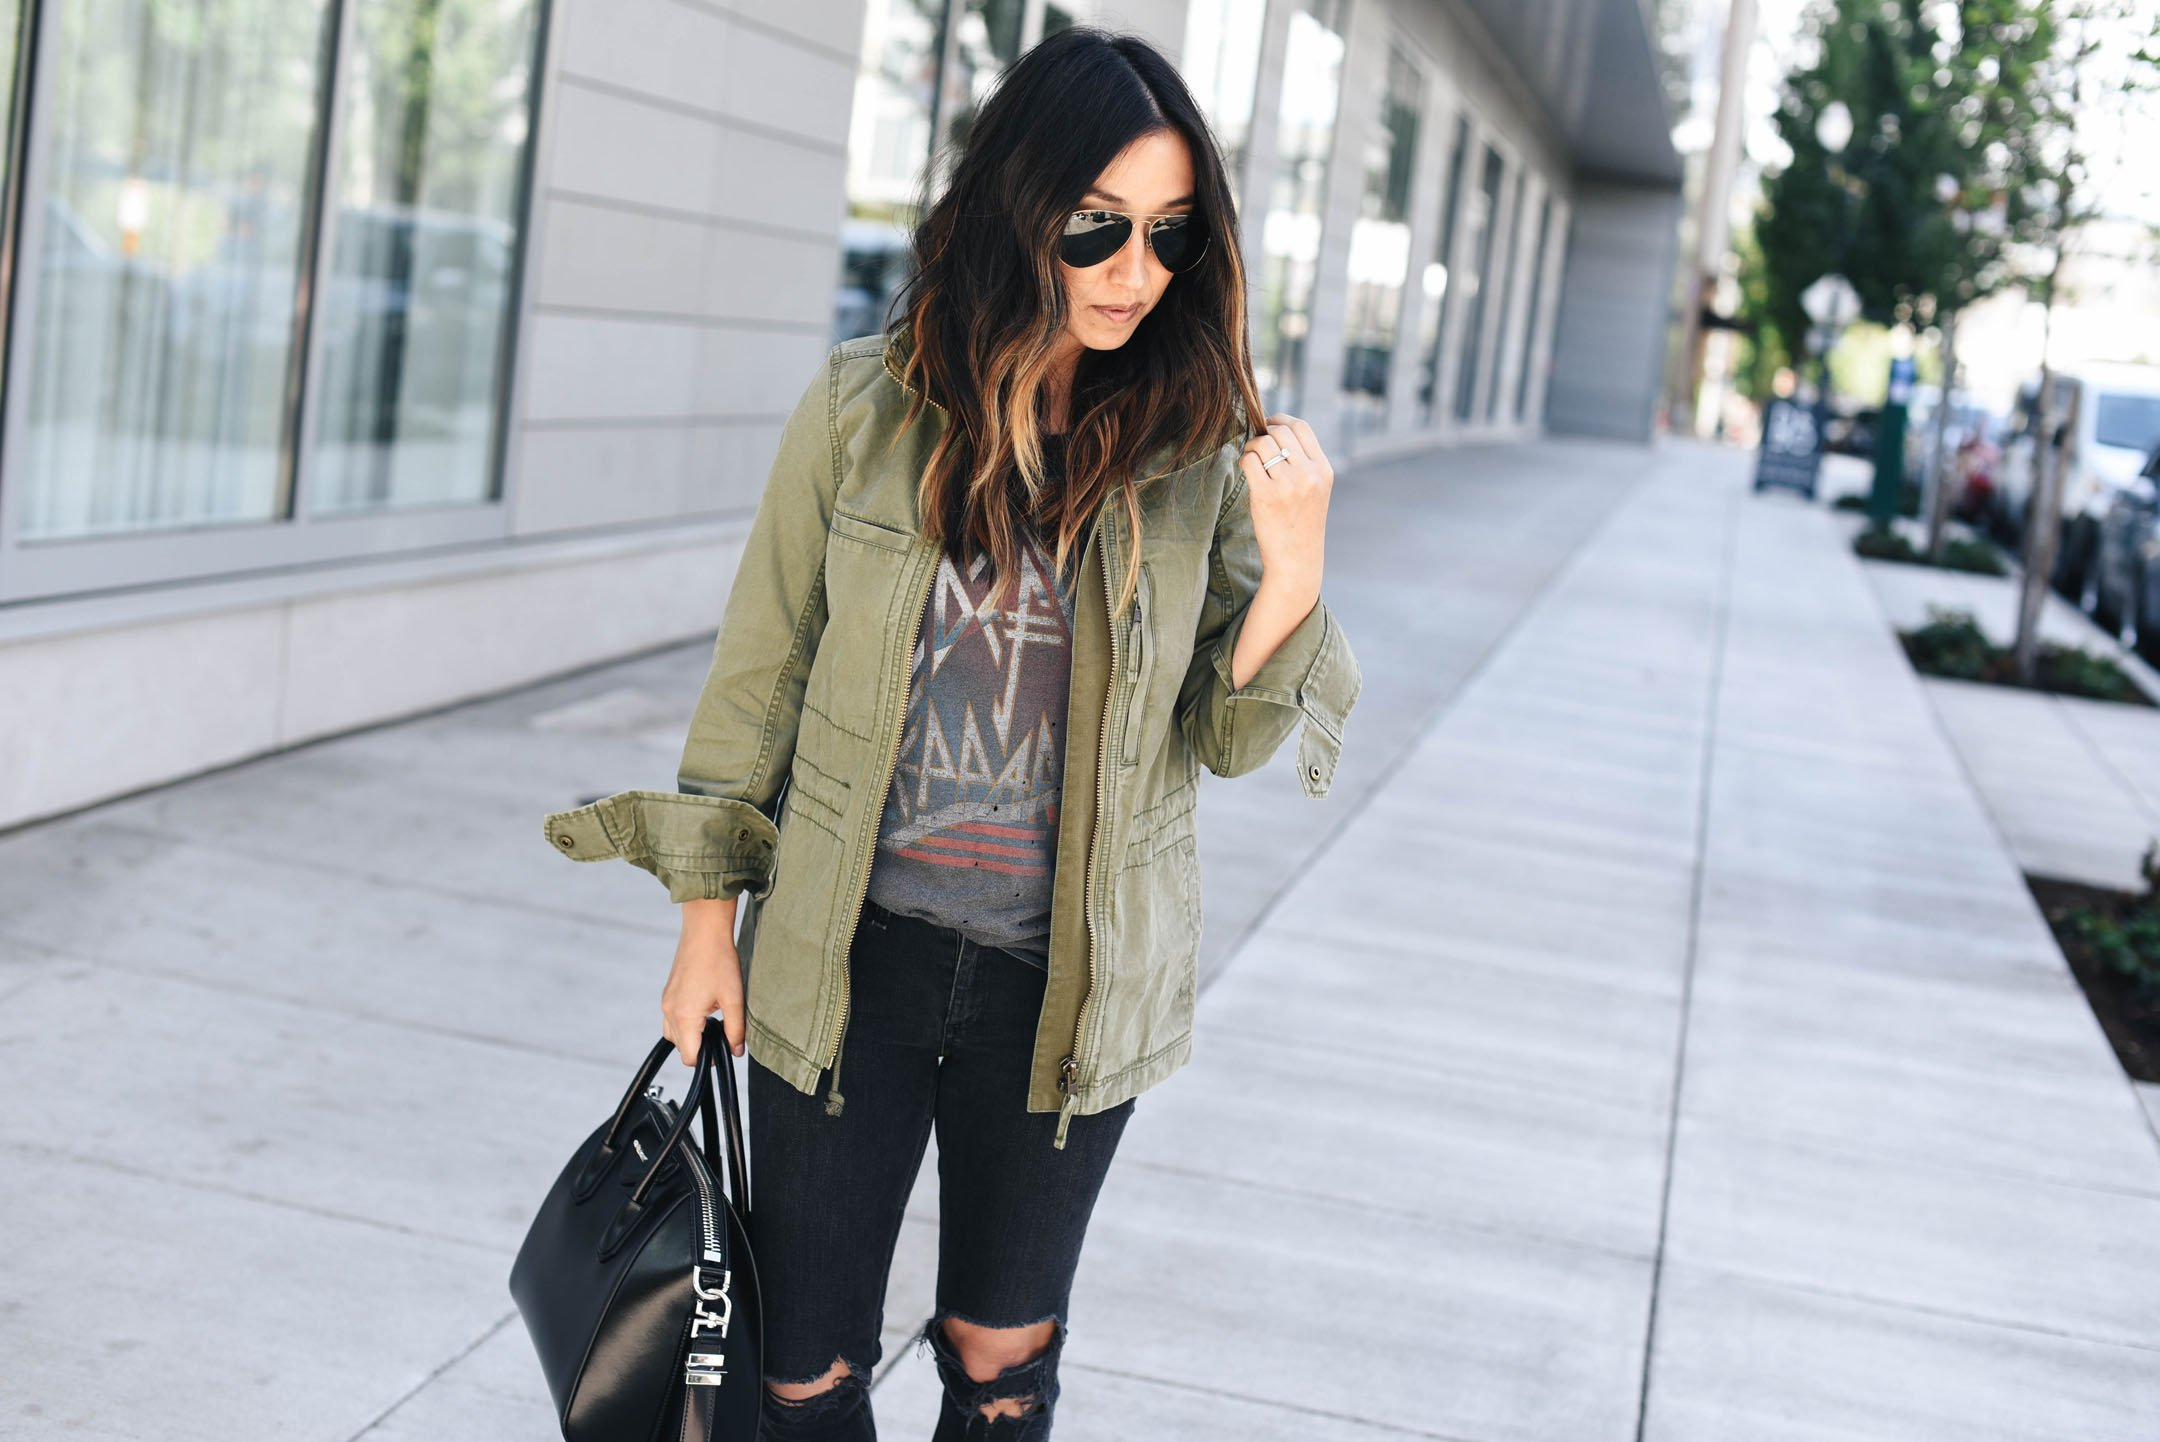 How to style rocker tees